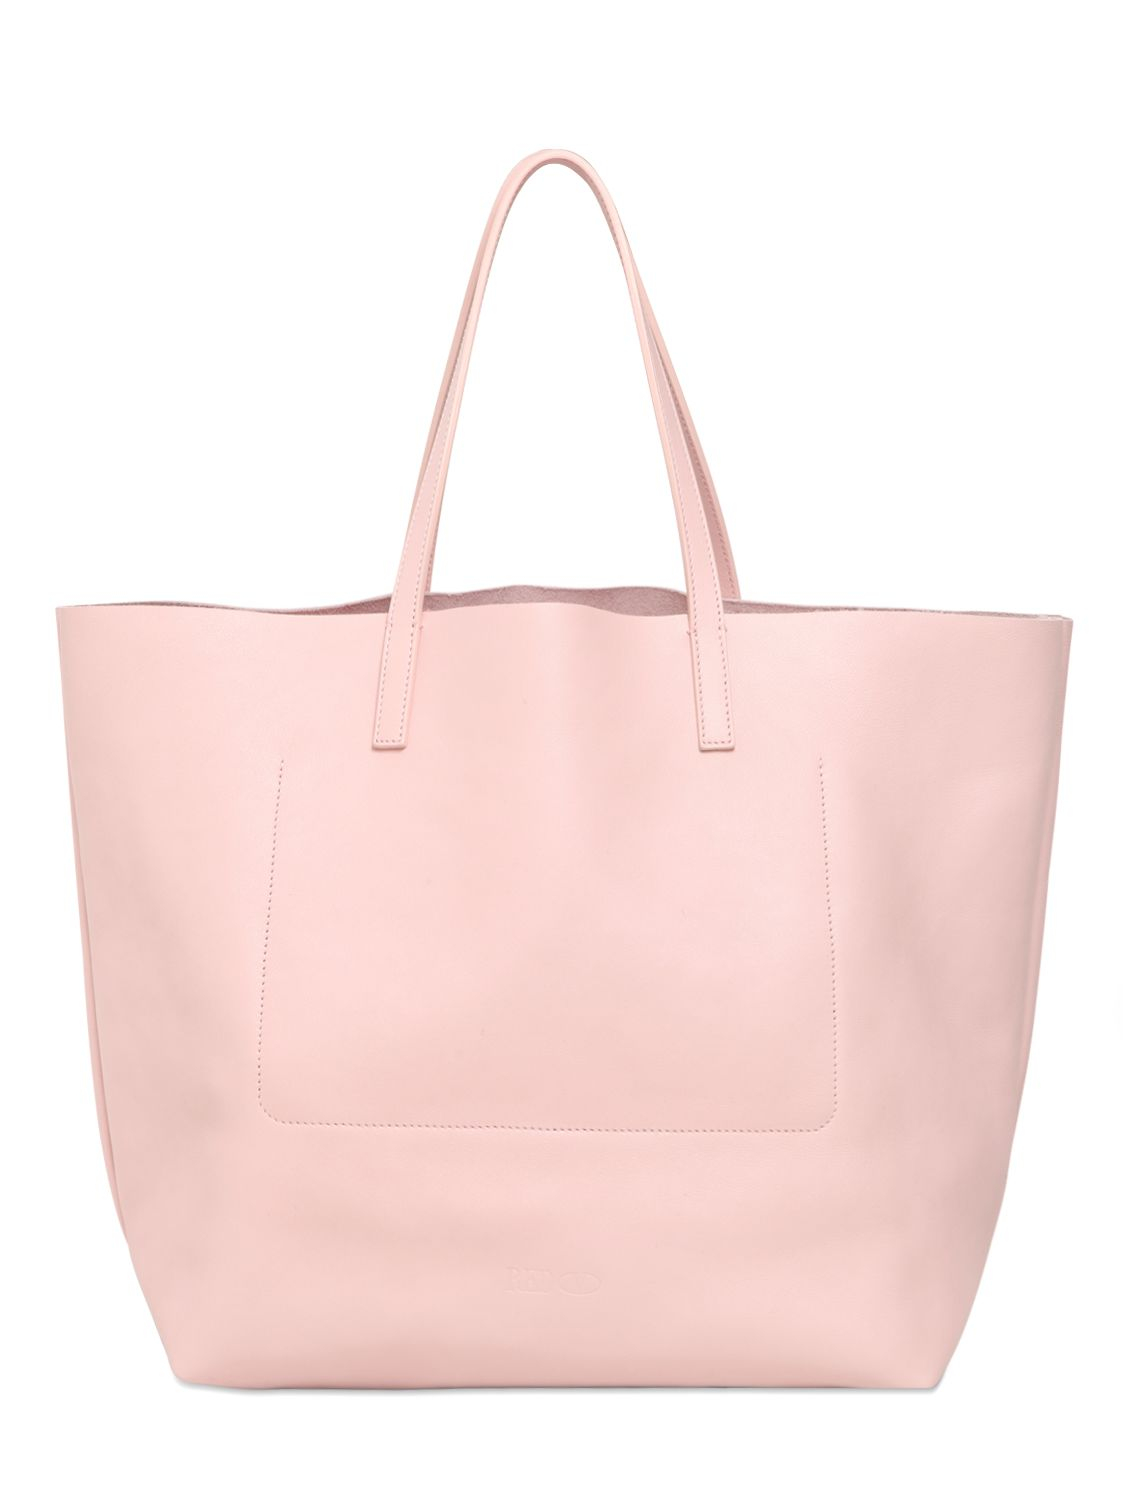 Lyst - RED Valentino Glitter Mouth Appliqué Leather Tote Bag in Pink